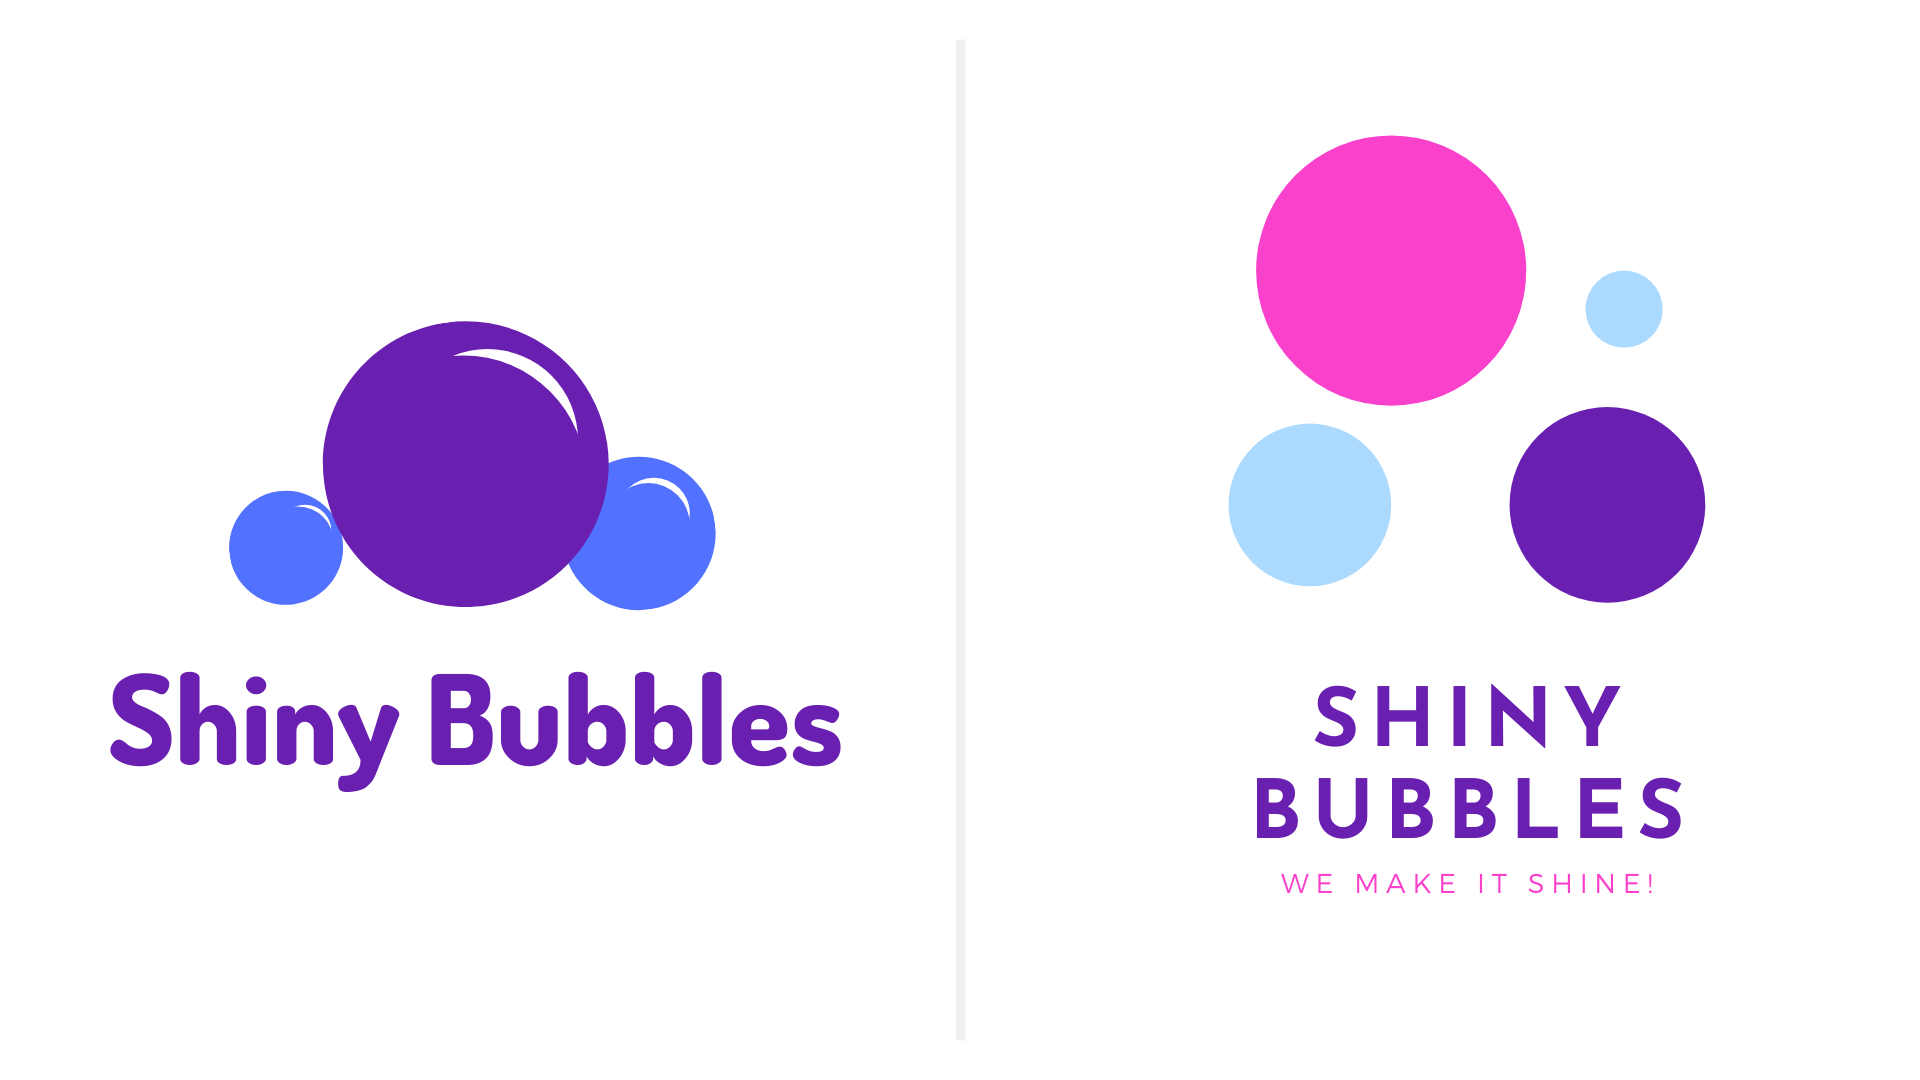 cleaning services logo examplea shiny bubbles